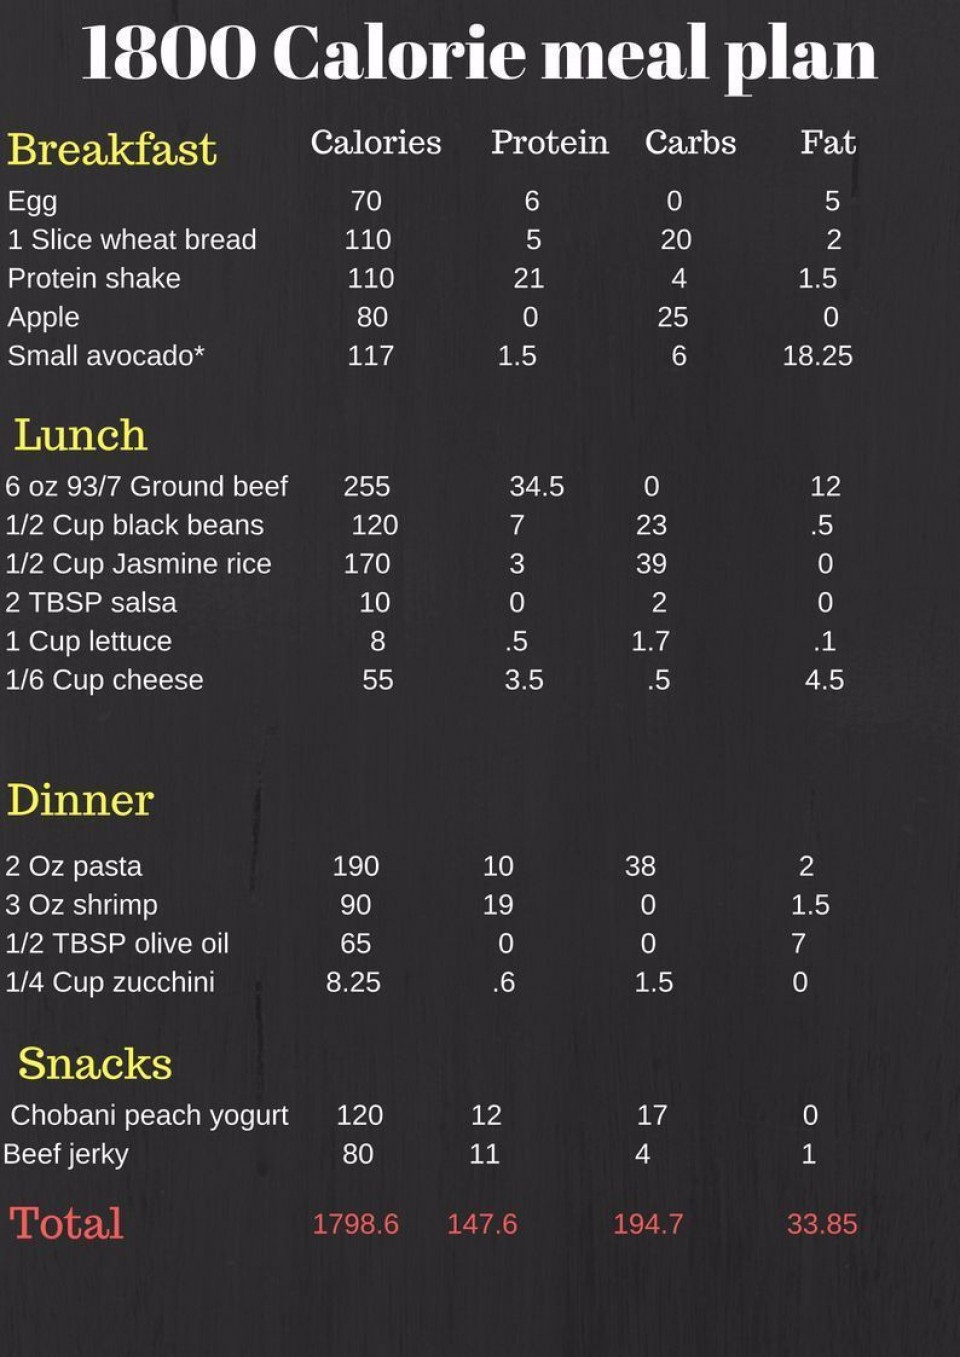 002 Awful Sample 1800 Calorie Meal Plan Pdf High Definition 960